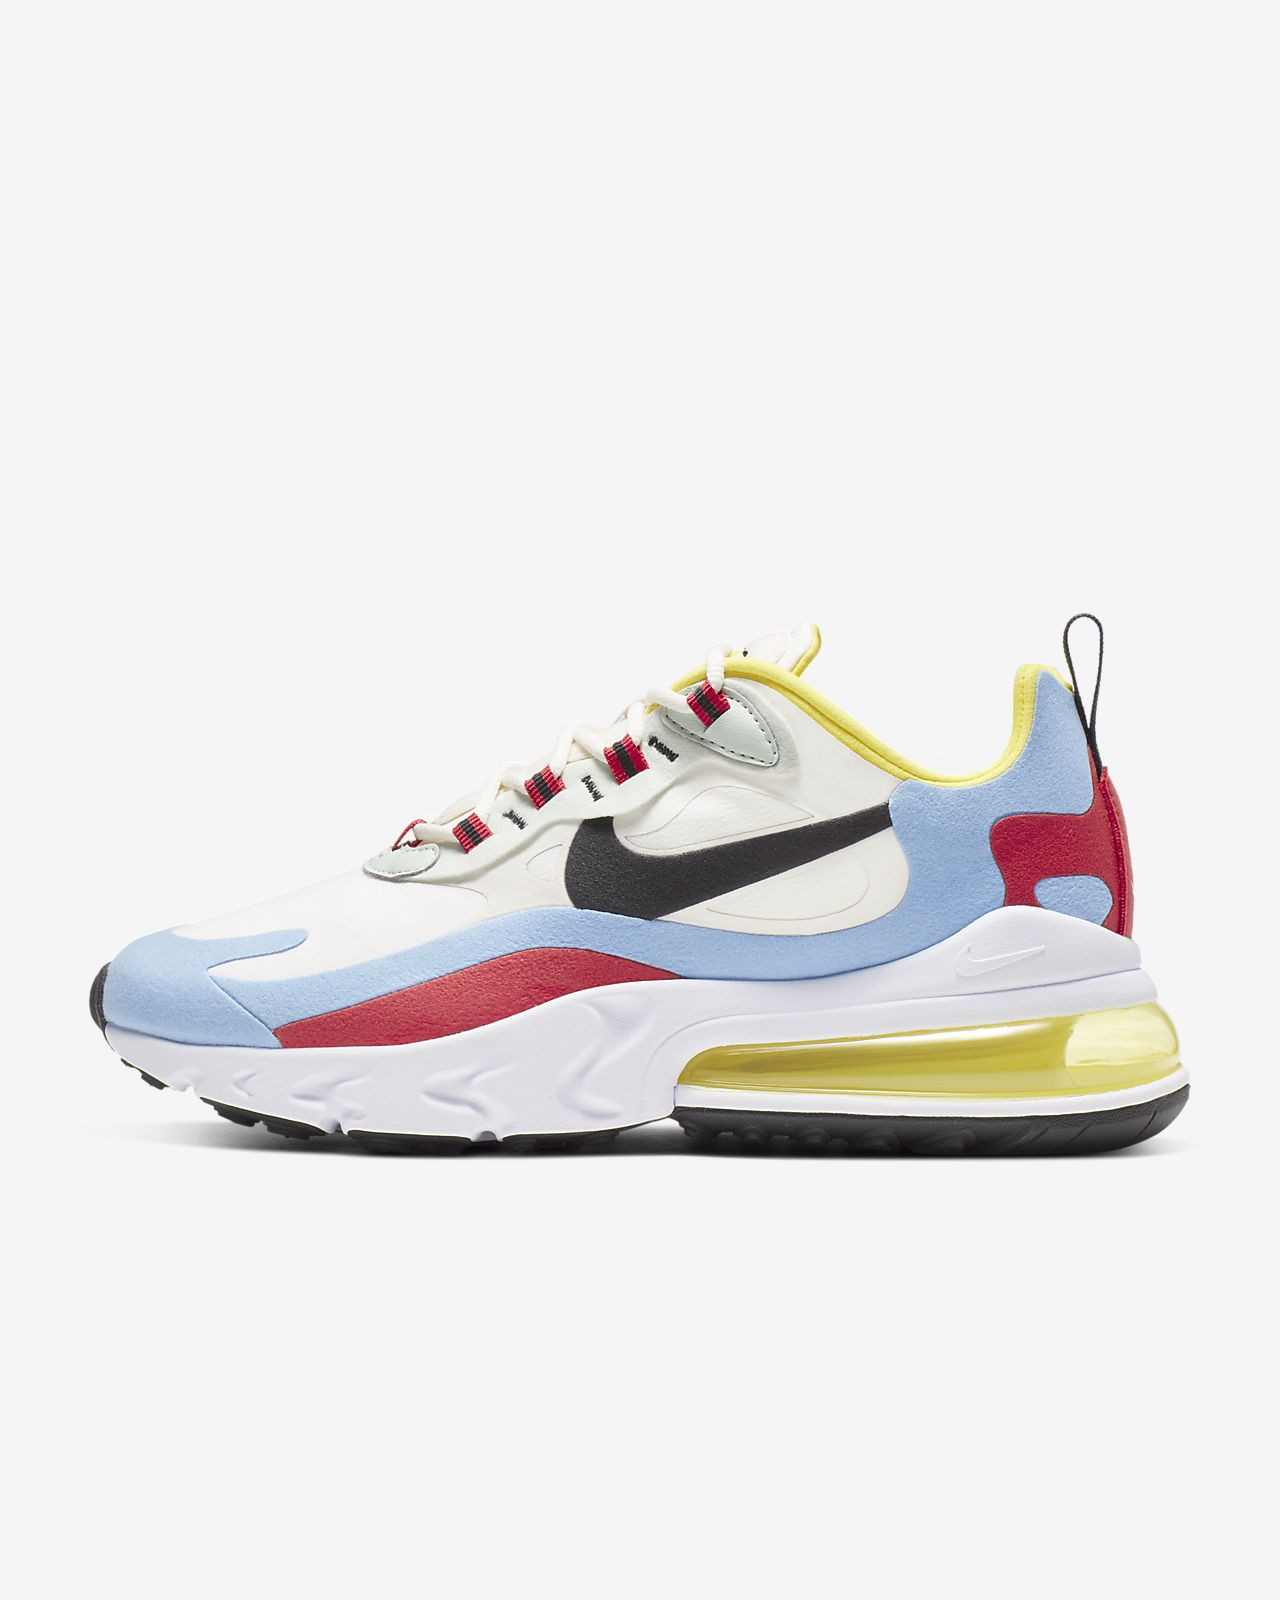 Nike Air Max 270 React (Bauhaus) Women's Shoe